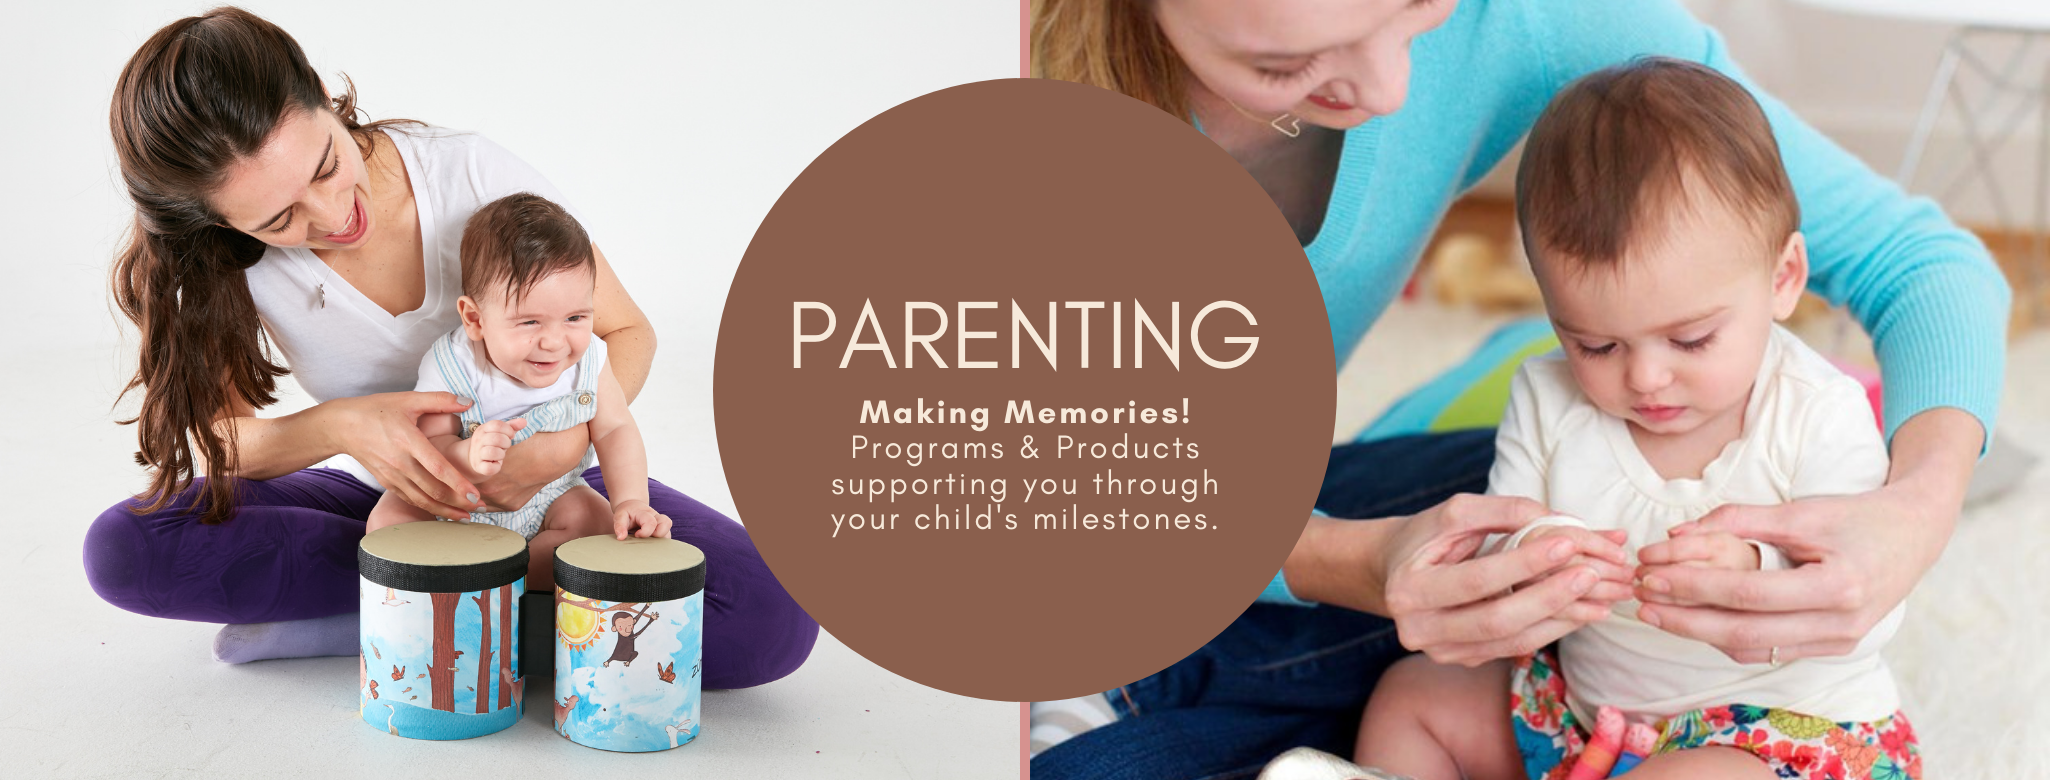 Parenting classes Barrie and products for baby toddler and child